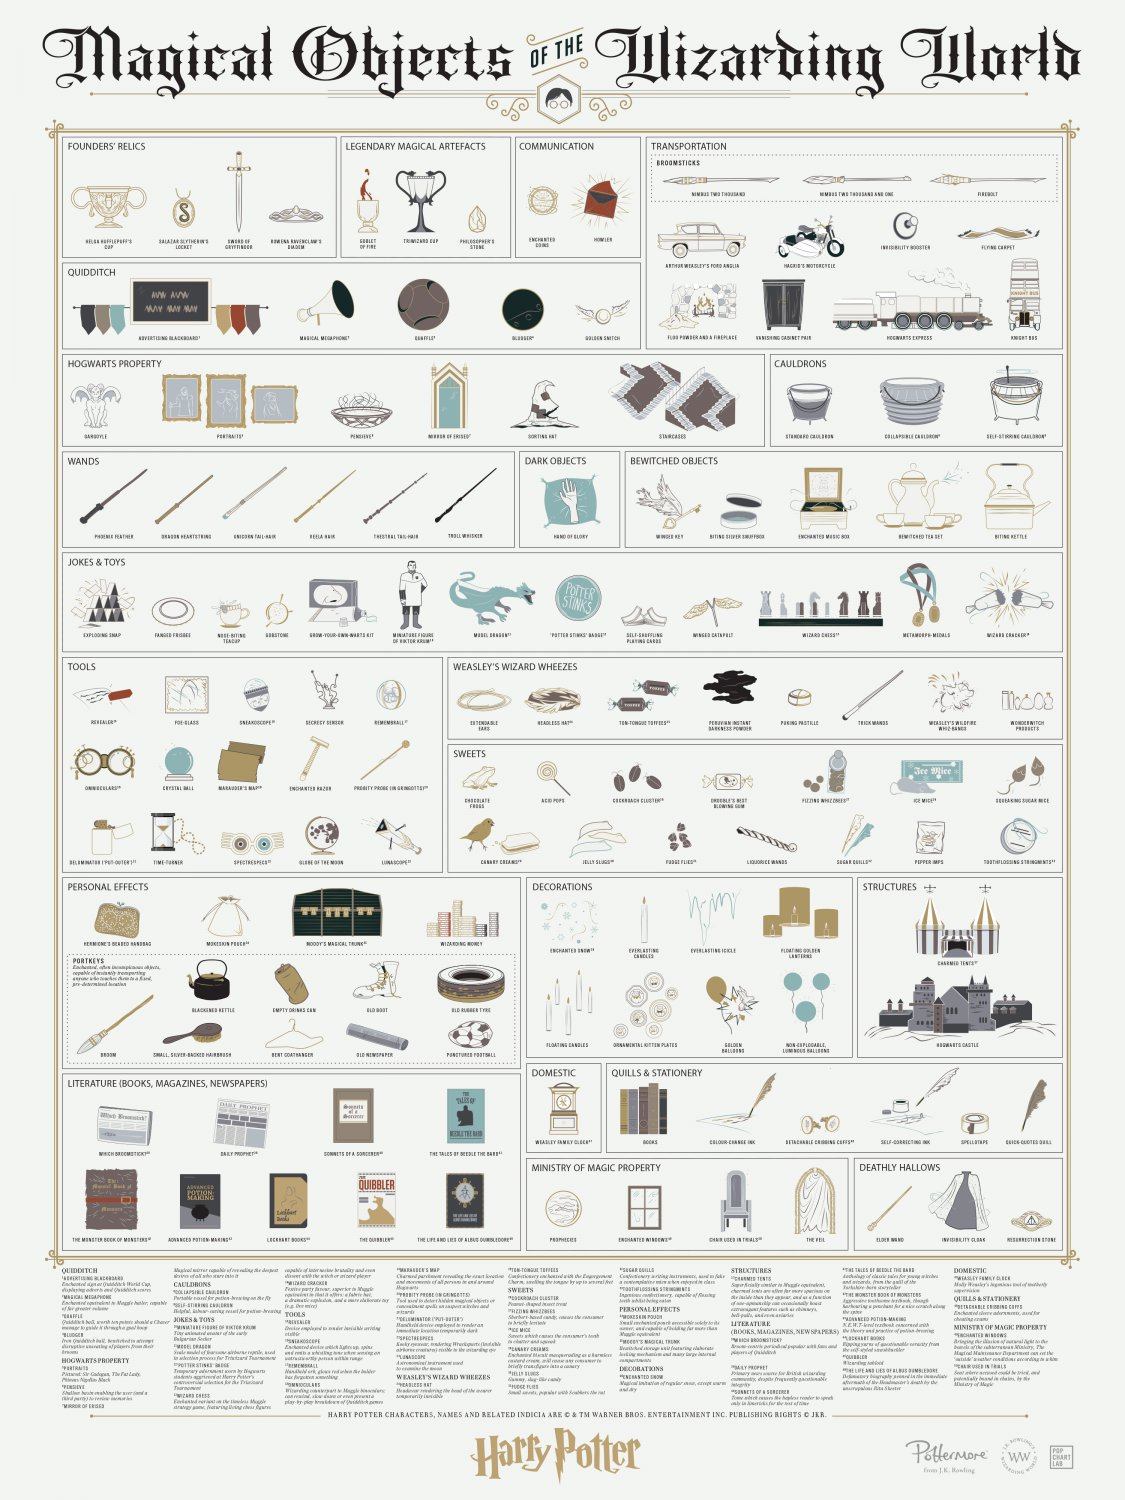 Magical Objects of the Wizarding World   18x28 inches Canvas Print